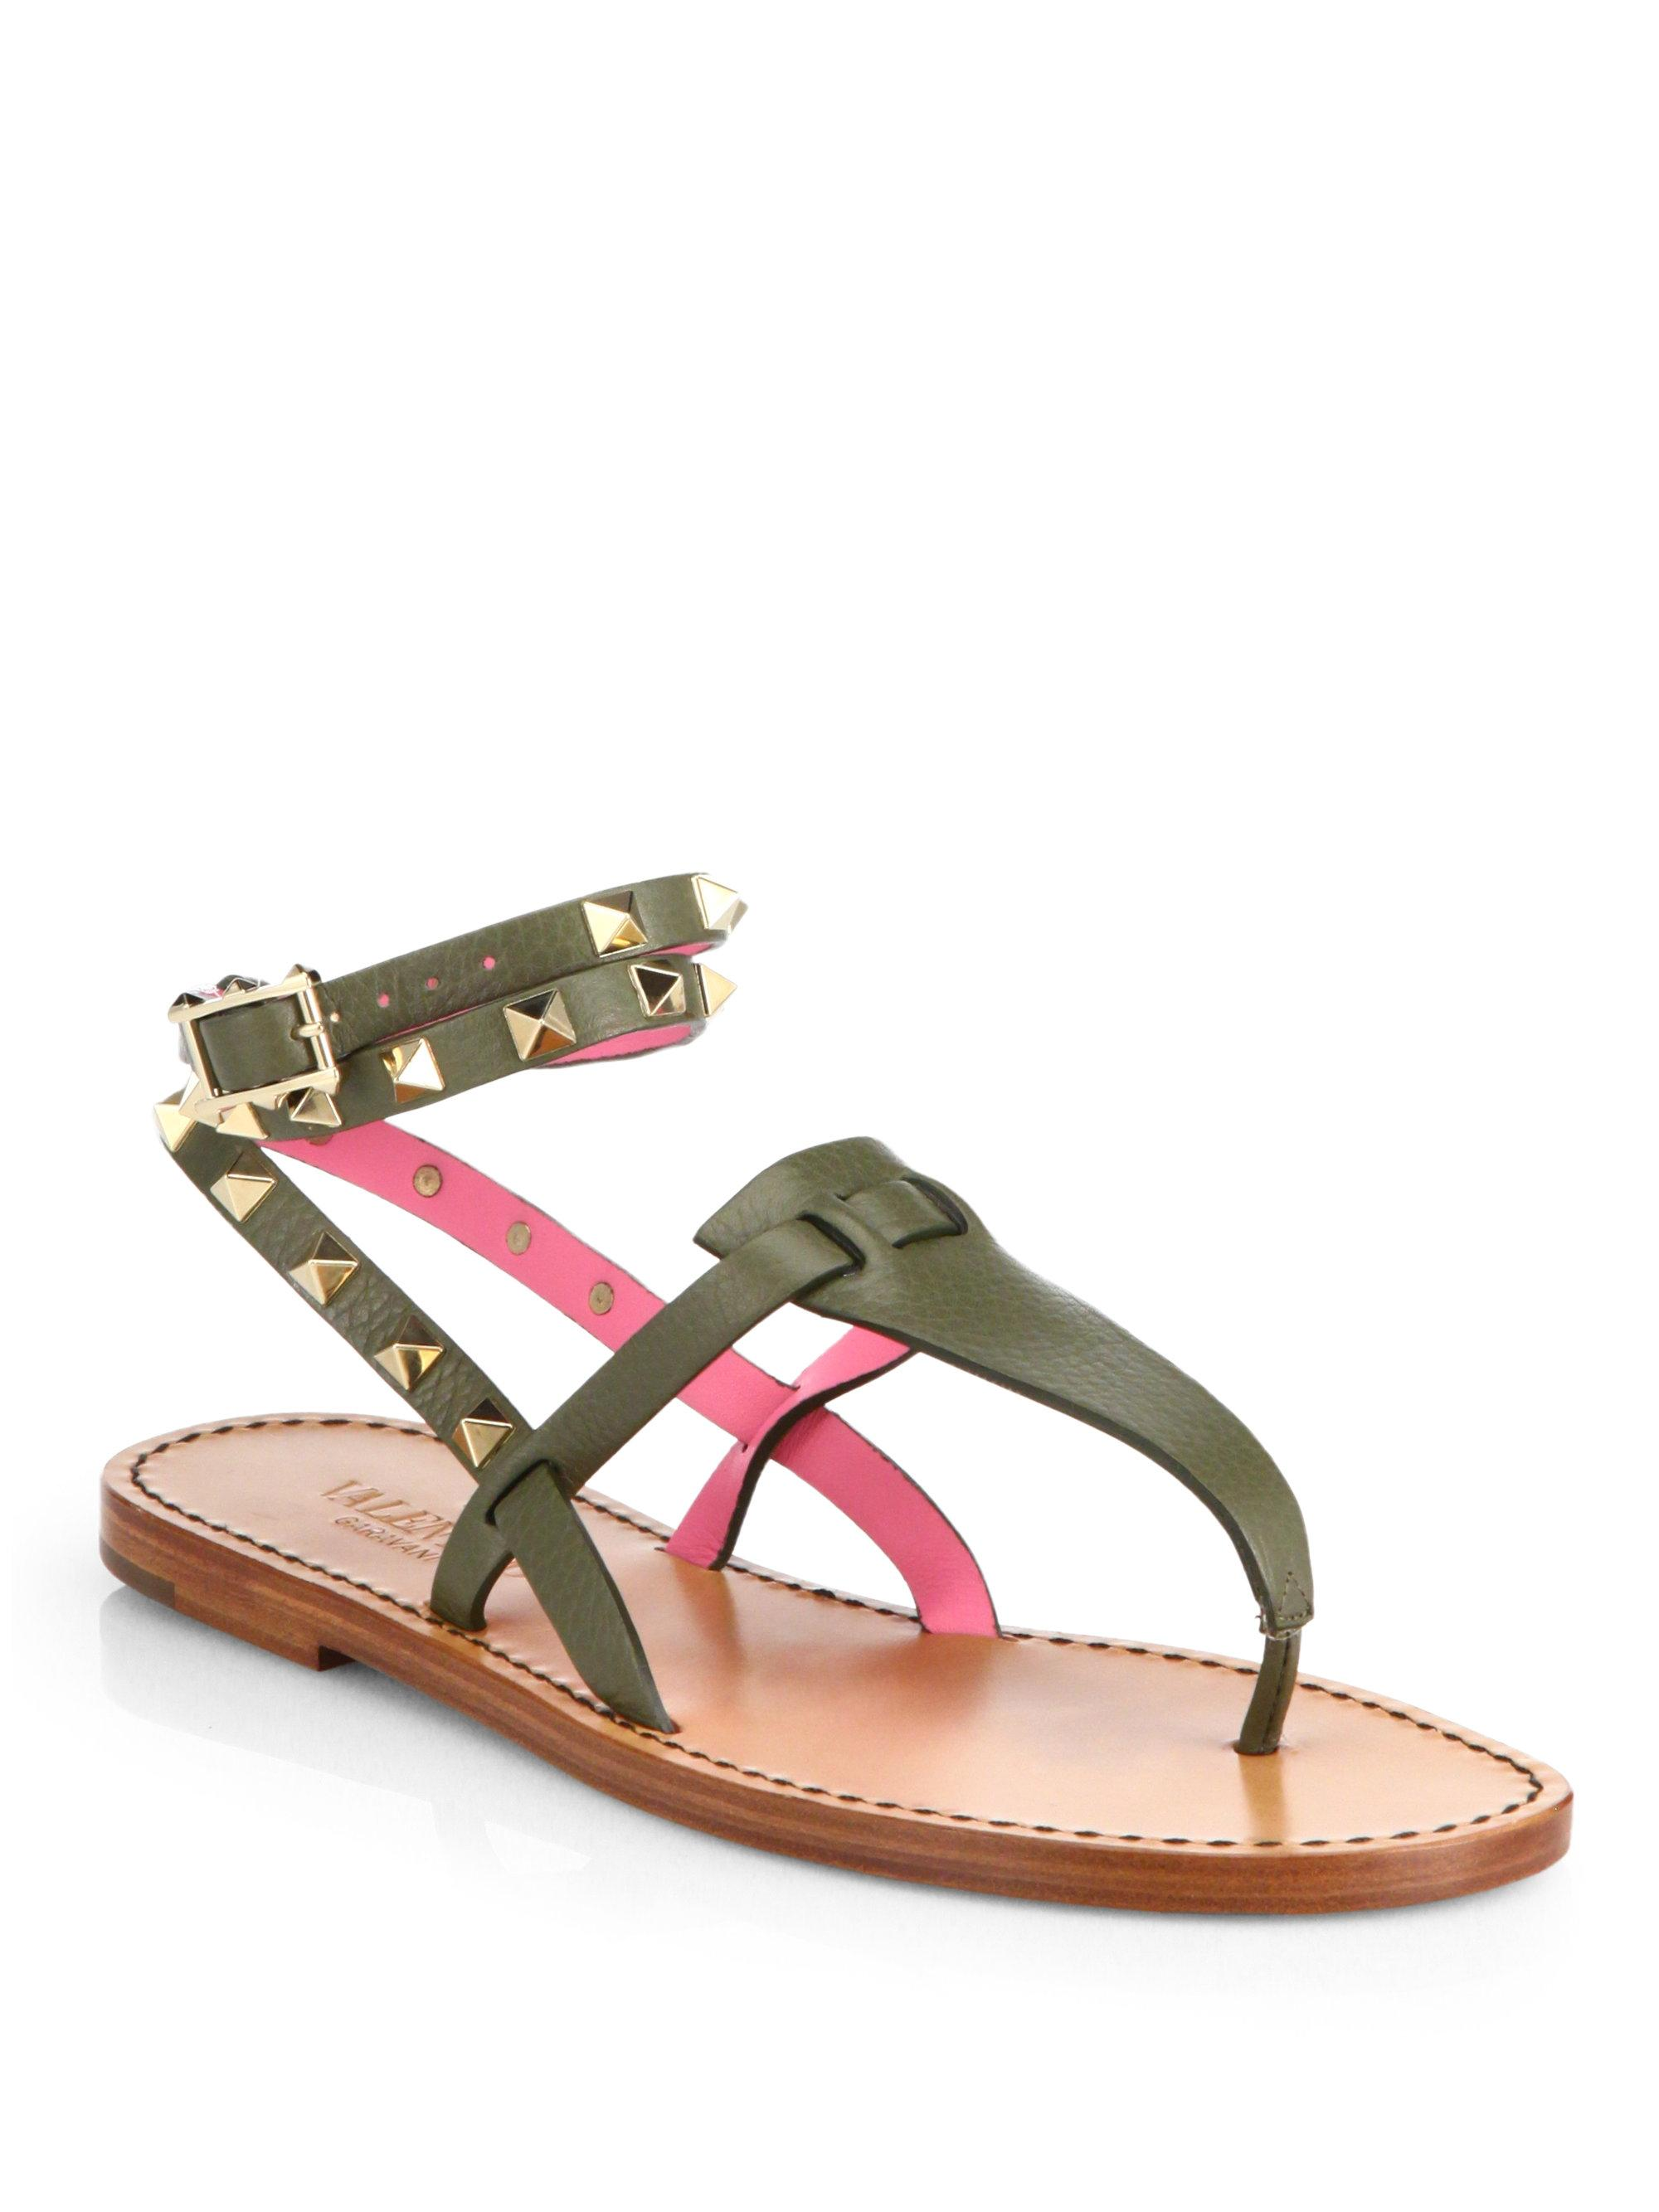 Valentino Green Rockstud Pink Leather Ankle Strap Wrap Around Thong Flat Sandals Size EU 36 (Approx. US 6) Regular (M, B)